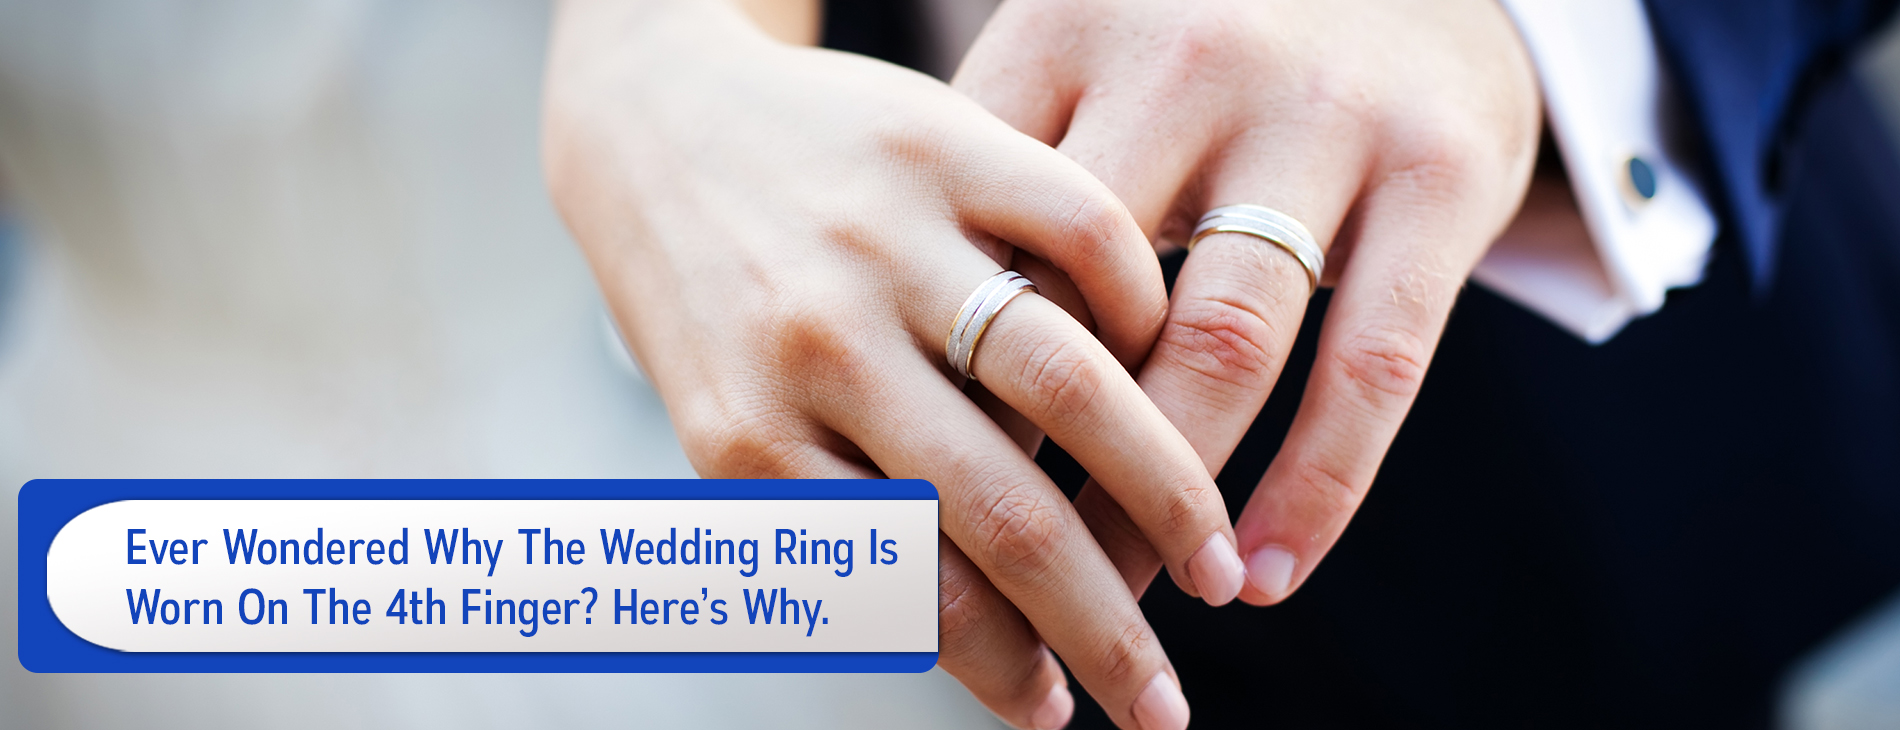 Ever Wondered Why The Wedding Ring Is Worn On The 4th Finger